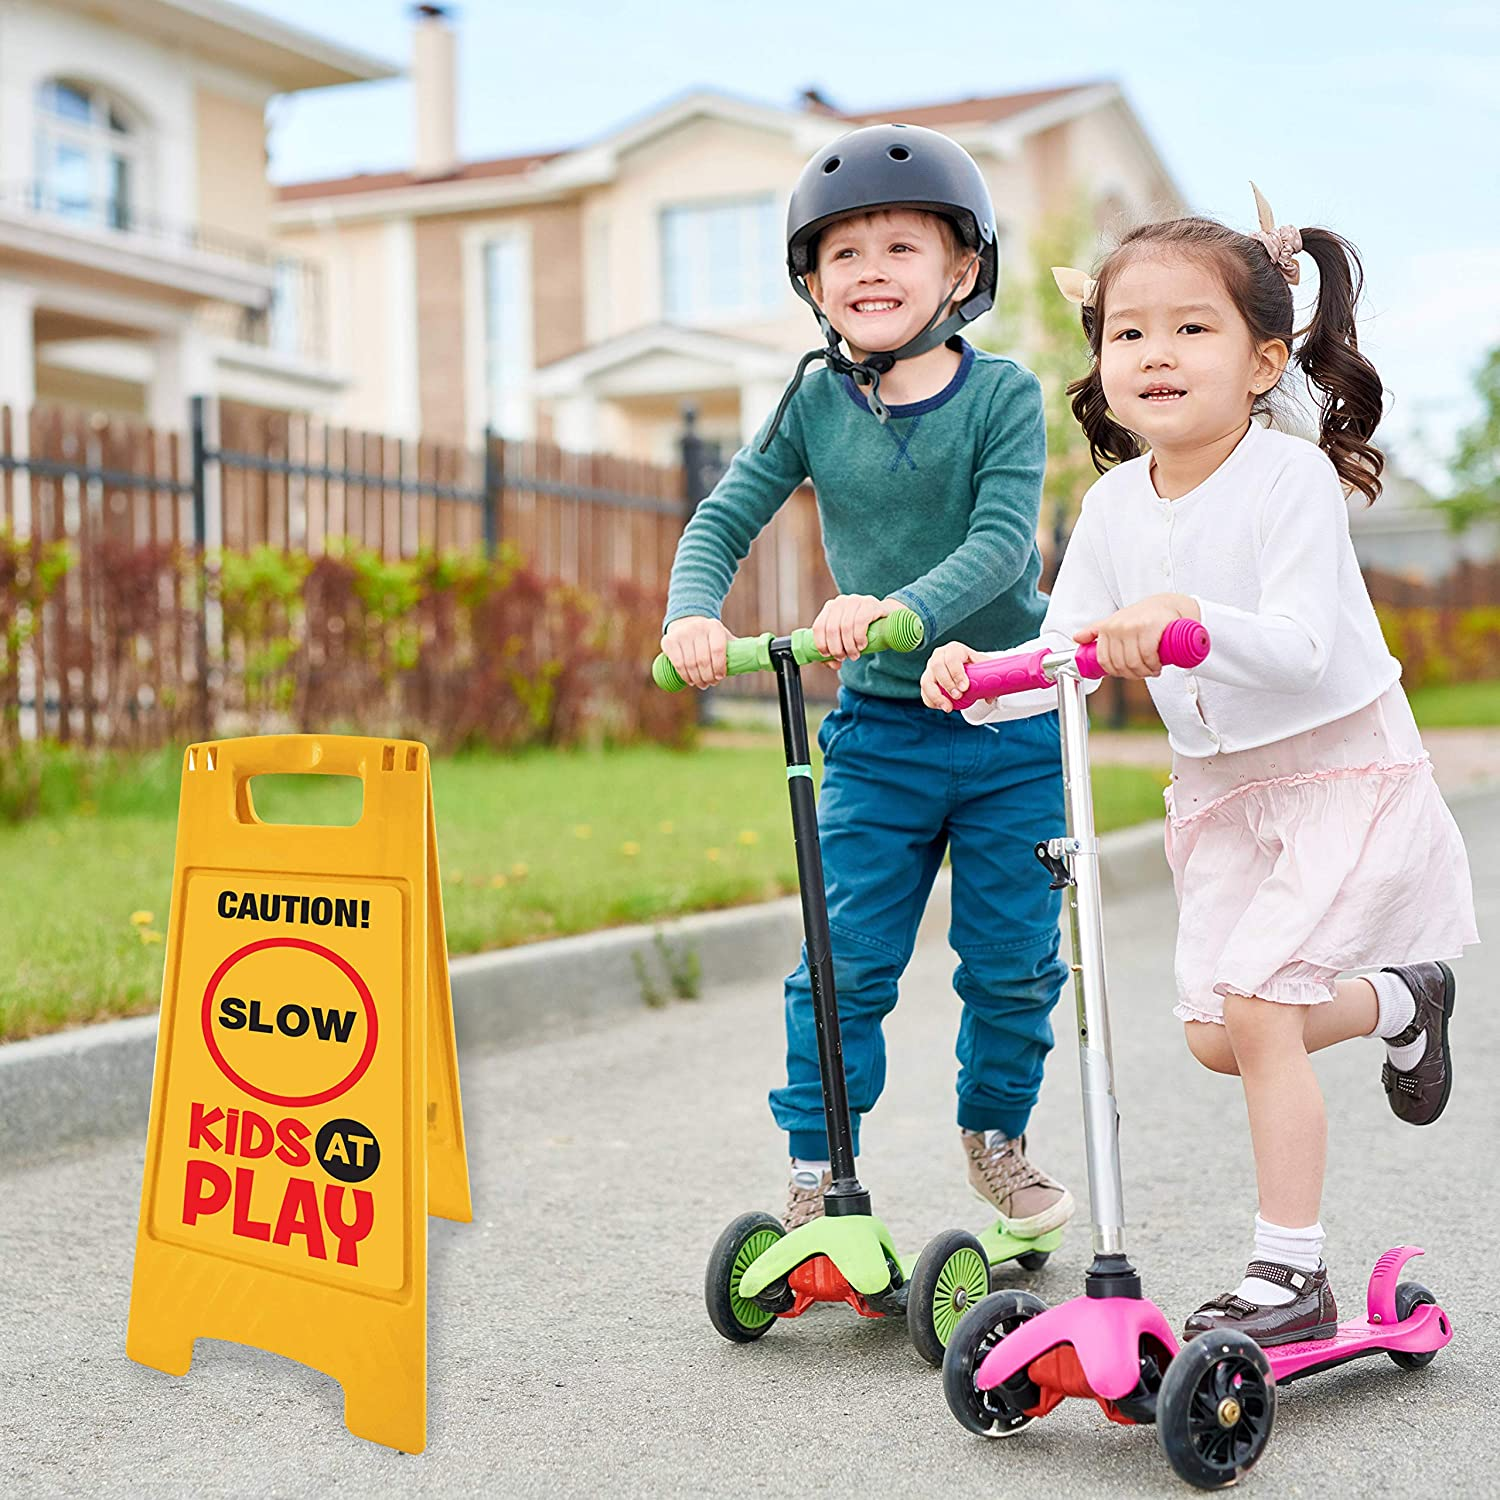 Caution Kids At Play Sign Large 420mm water//fade proof safety OH/&S